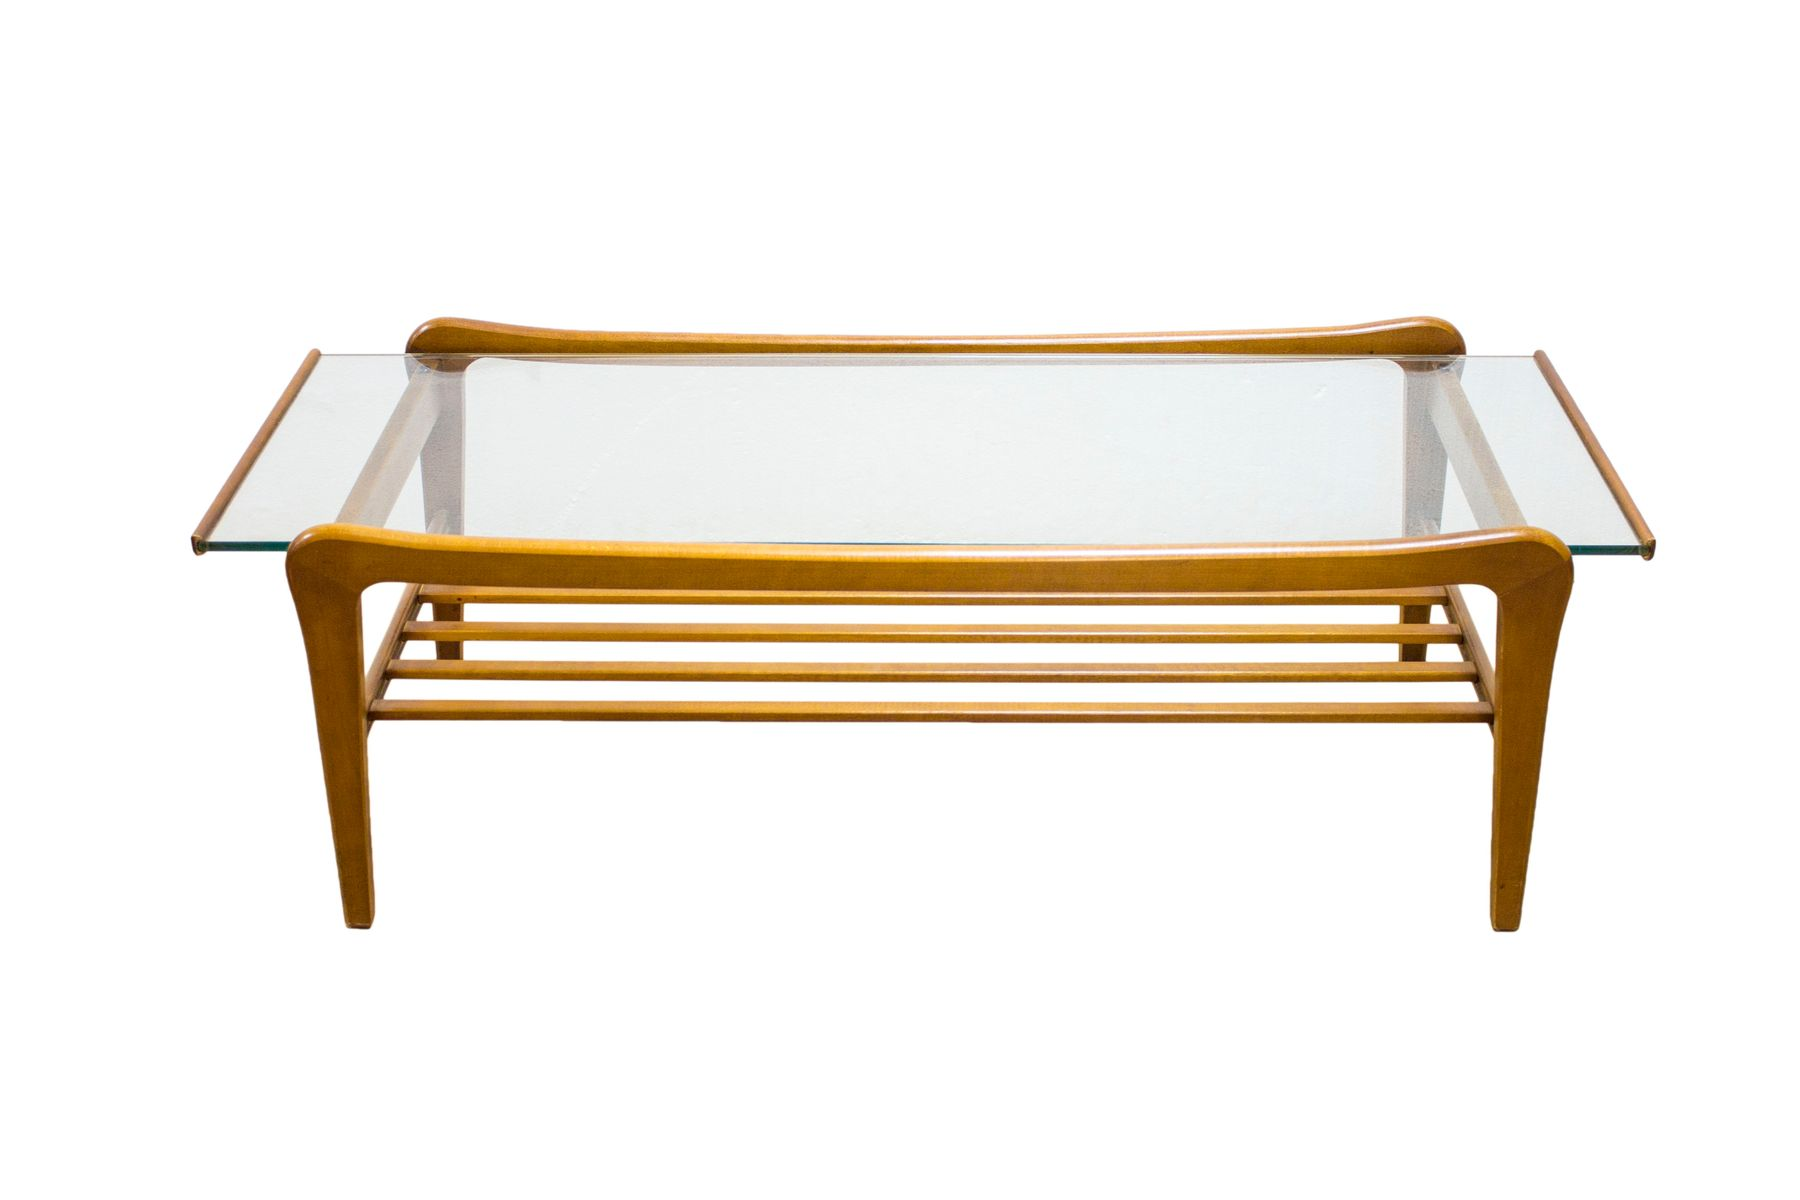 Danish Teak And Glass Coffee Table With Magazine Shelf For Sale At Pamono